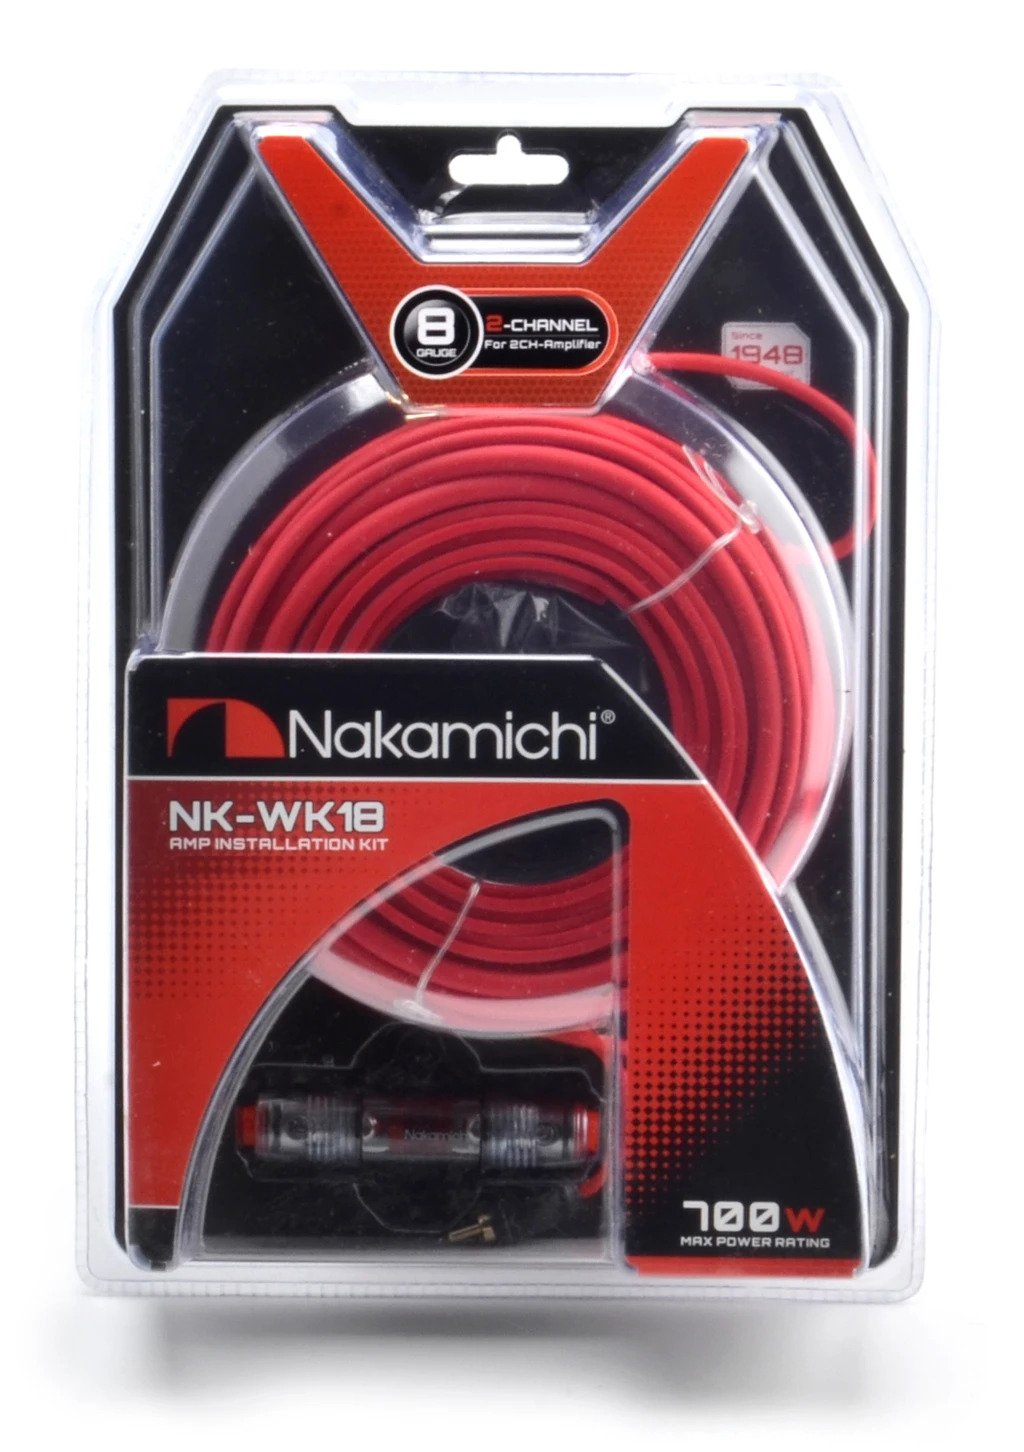 Nakamichi 8GA Wiring Kit NK-WK18 Cable Set For Amplifier 2-Channel